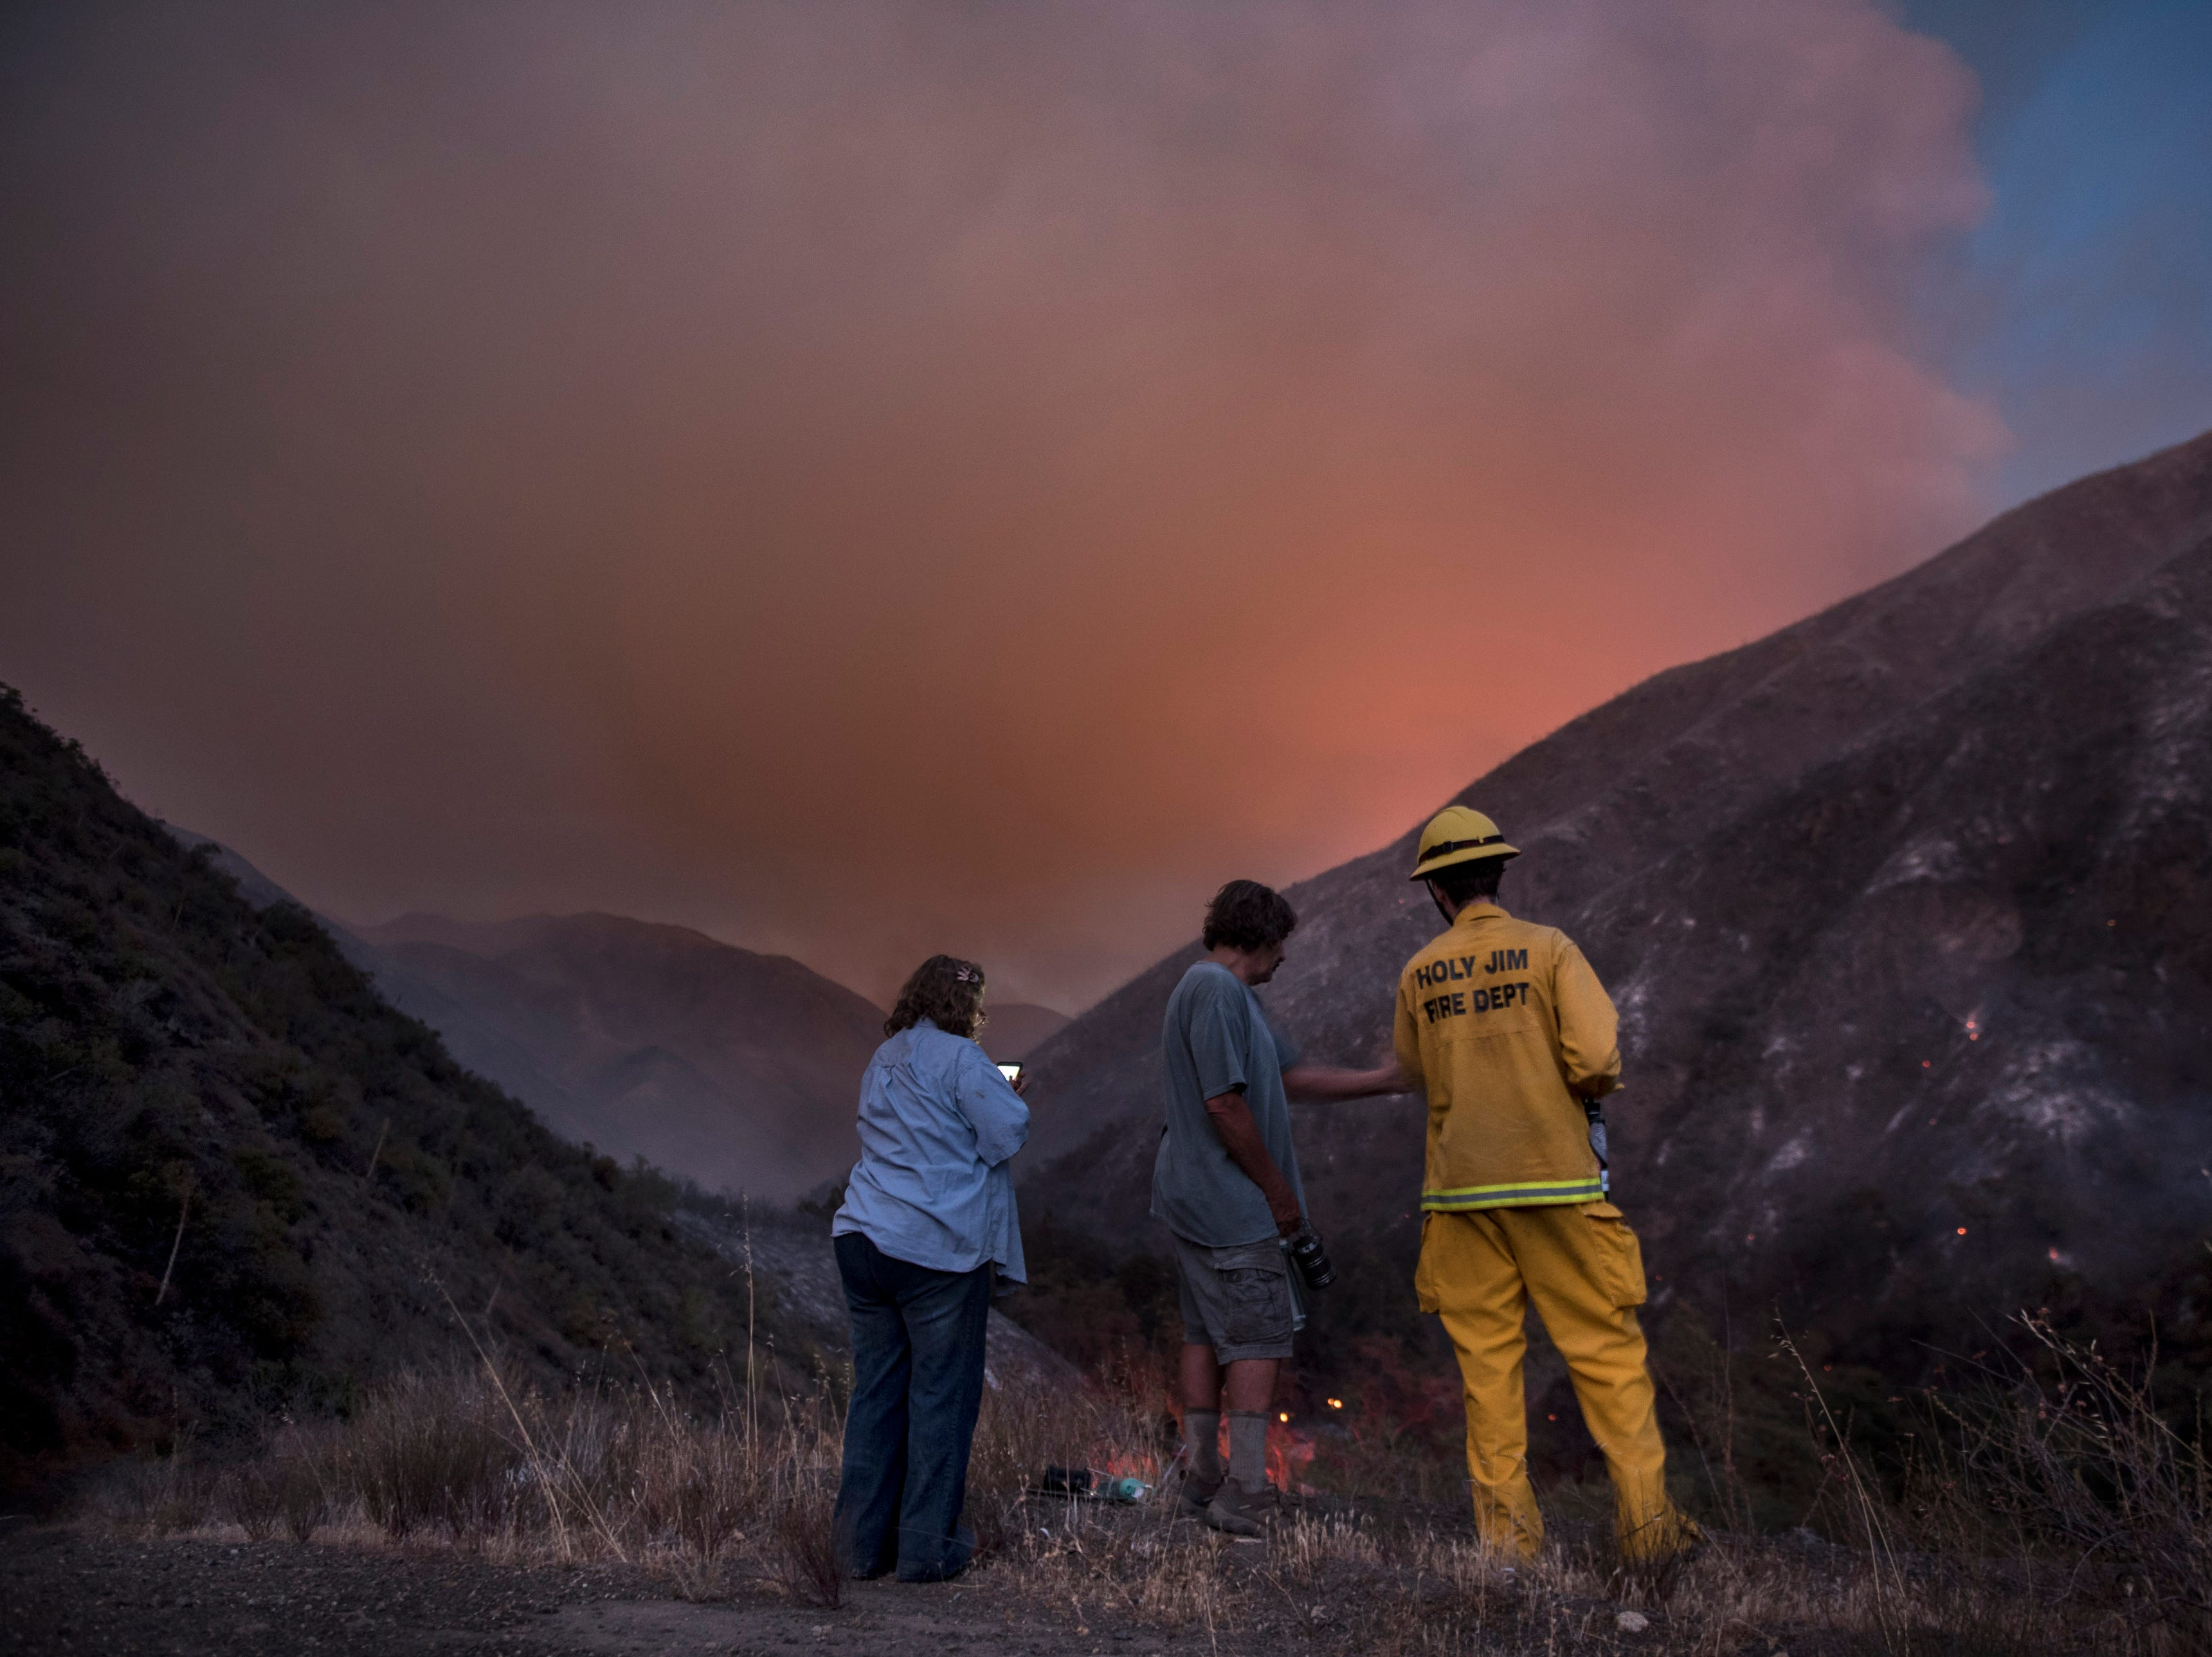 Holy Jim Canyon residents Beep and John Colclough watch firefighting efforts of the Holy Fire in Trabuco Canyon, Calif., with volunteer firefighter Luke Senger on Monday, Aug 6, 2018. (Mindy Schauer/The Orange County Register via AP)